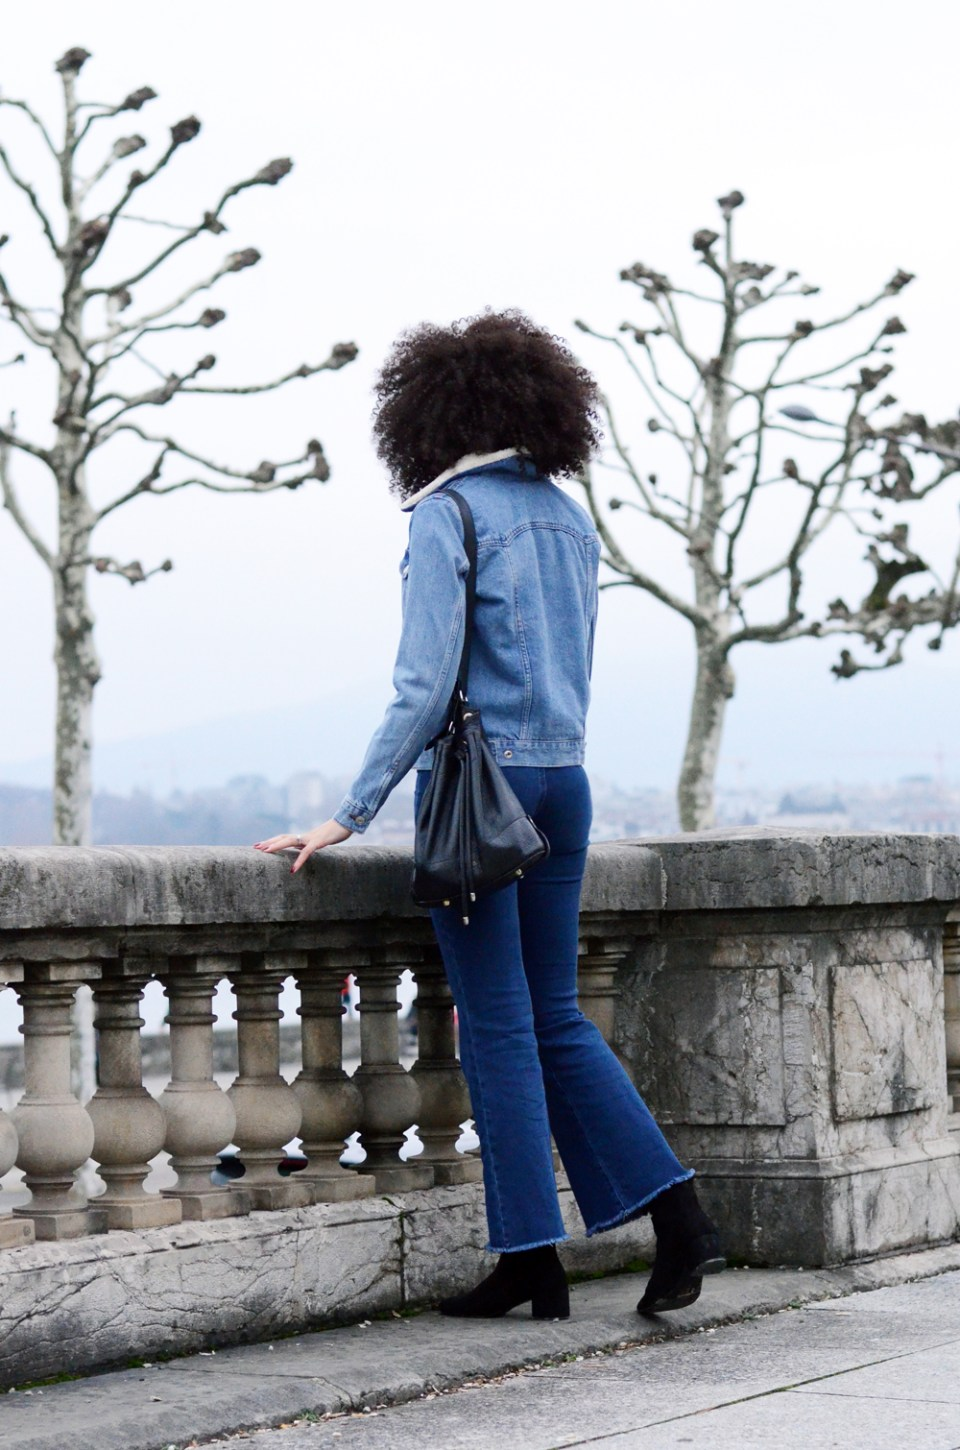 mercredie-blog-mode-geneve-suisse-blogueuse-bloggeuse-jean-flare-selected-sfena-aldo-stefi-boots-topshop-denim-jean-jacket-levis-turtle-neck-black